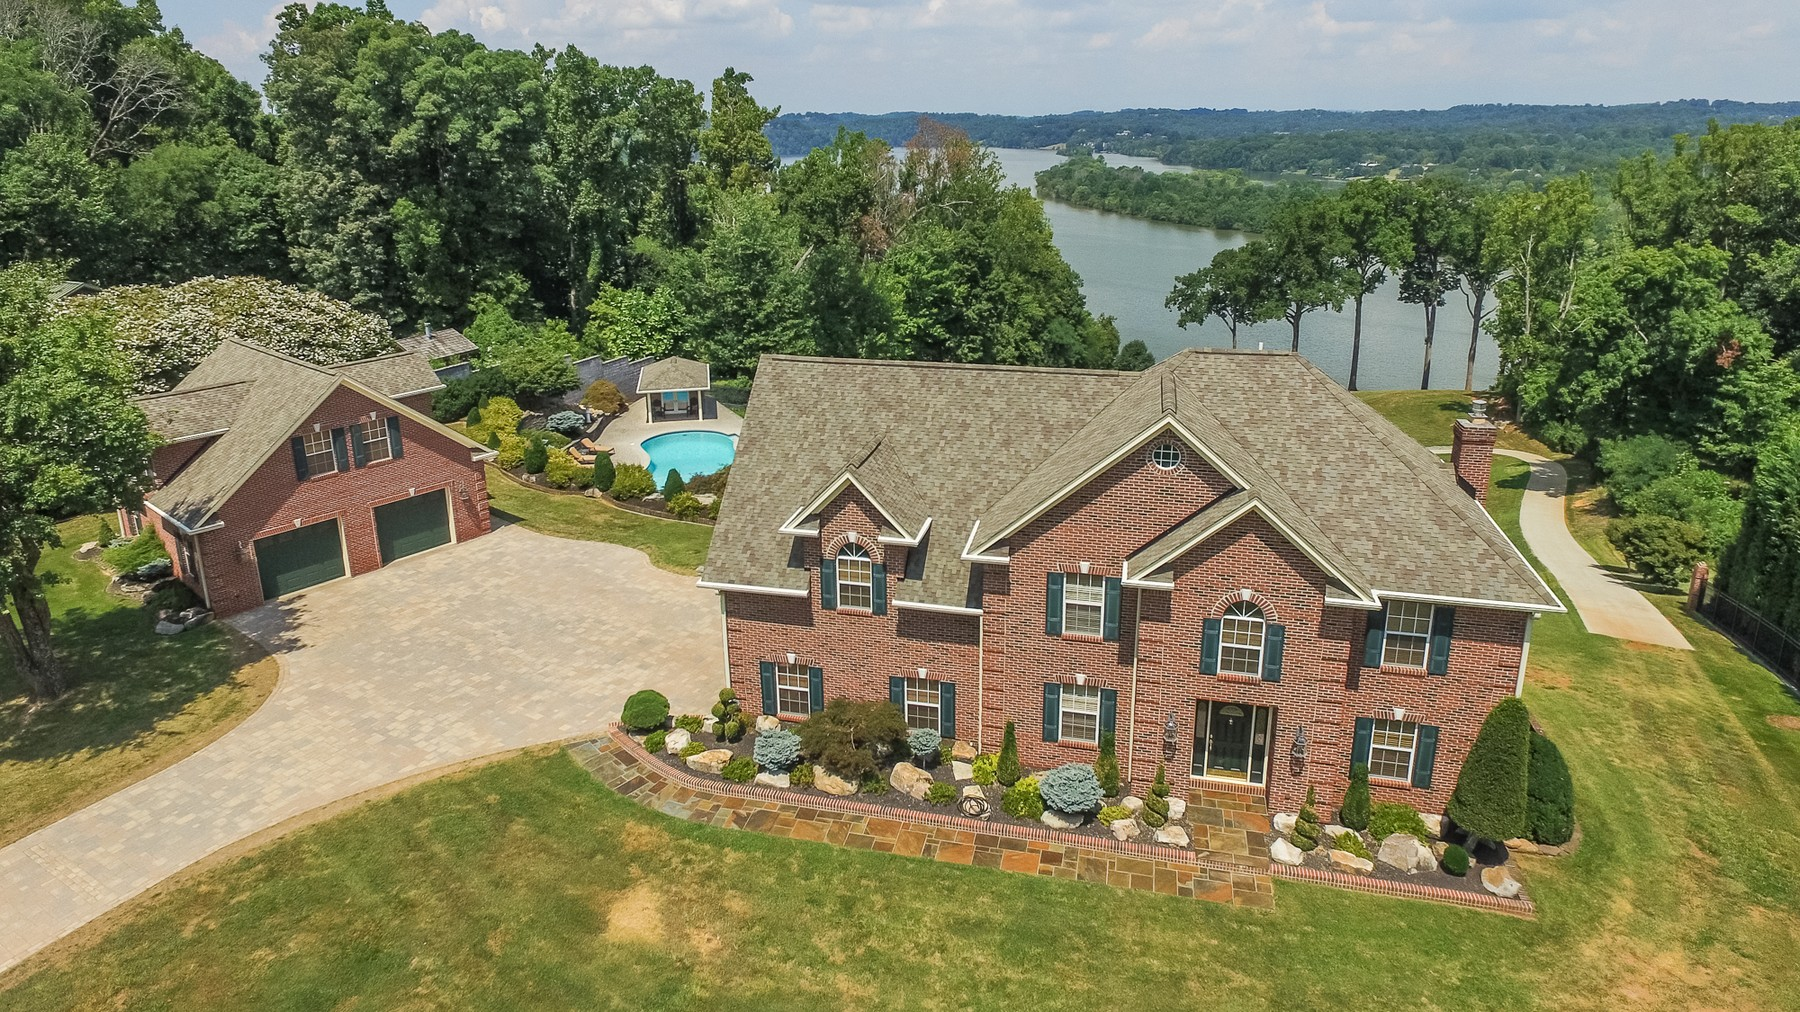 Single Family Home for Sale at Lakefront Estate Perfect For Entertaining 4015 Topside Road SW Knoxville, Tennessee, 37920 United States